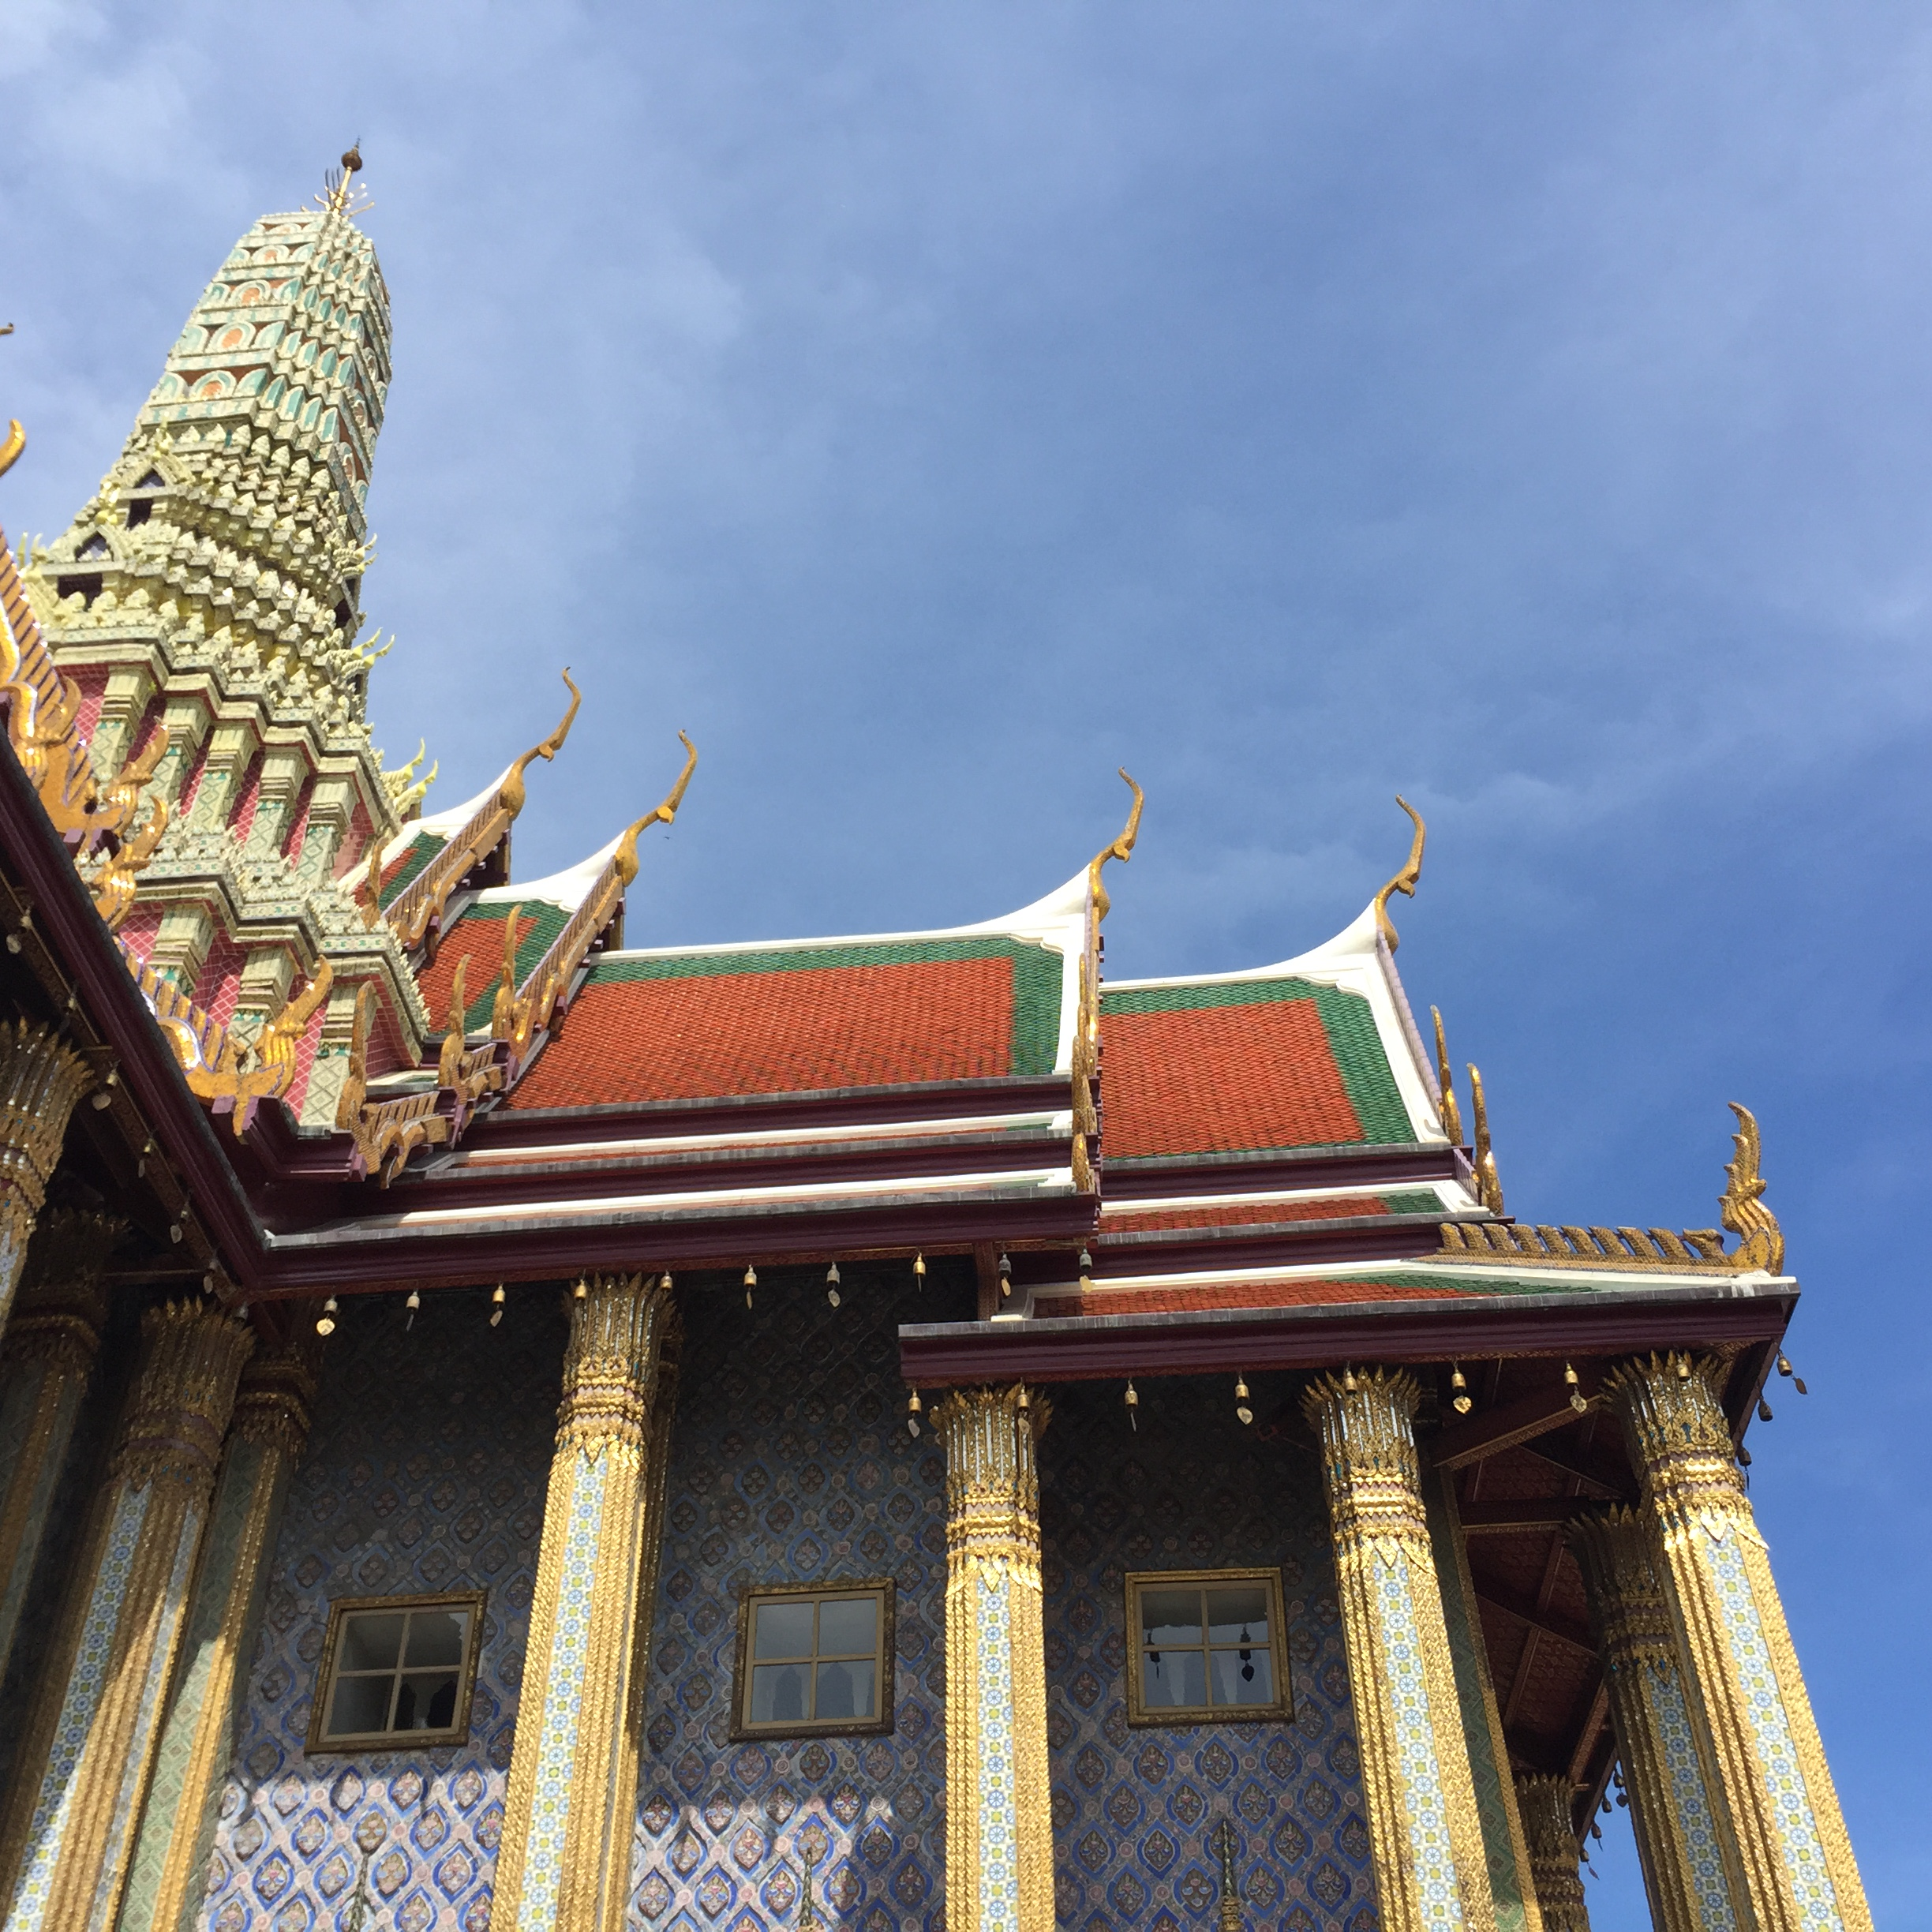 The mighty majestic Grand Palace